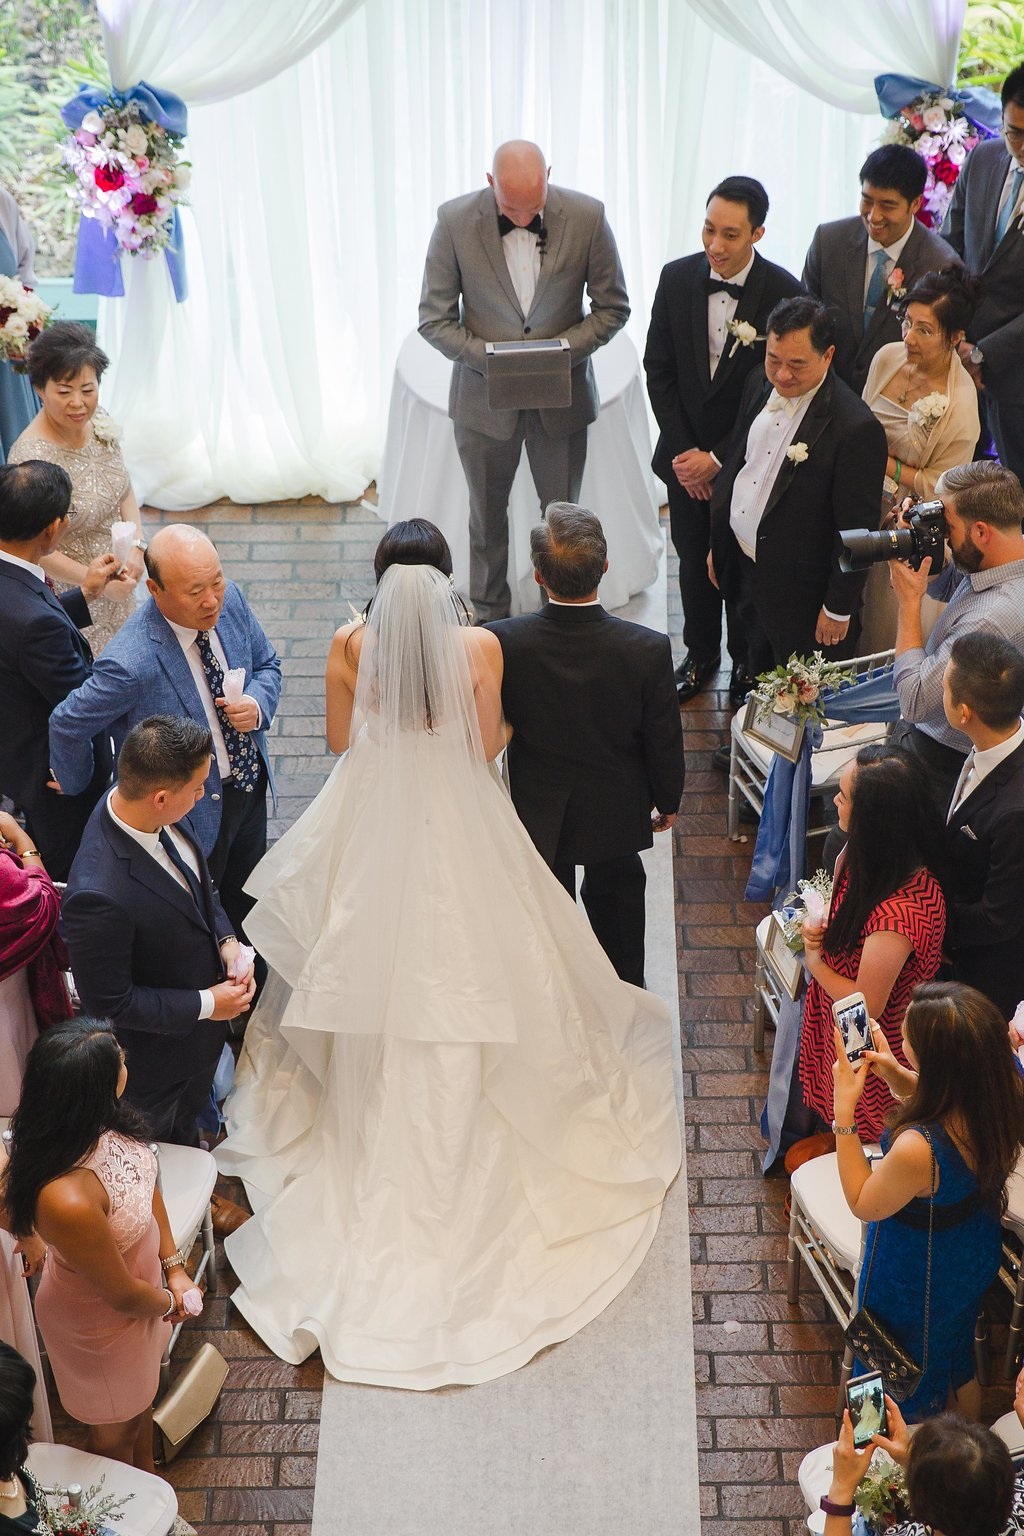 Although inclement weather brought their ceremony indoors, the expansive foyer of the performing arts center made for a stunning, grand backdrop.